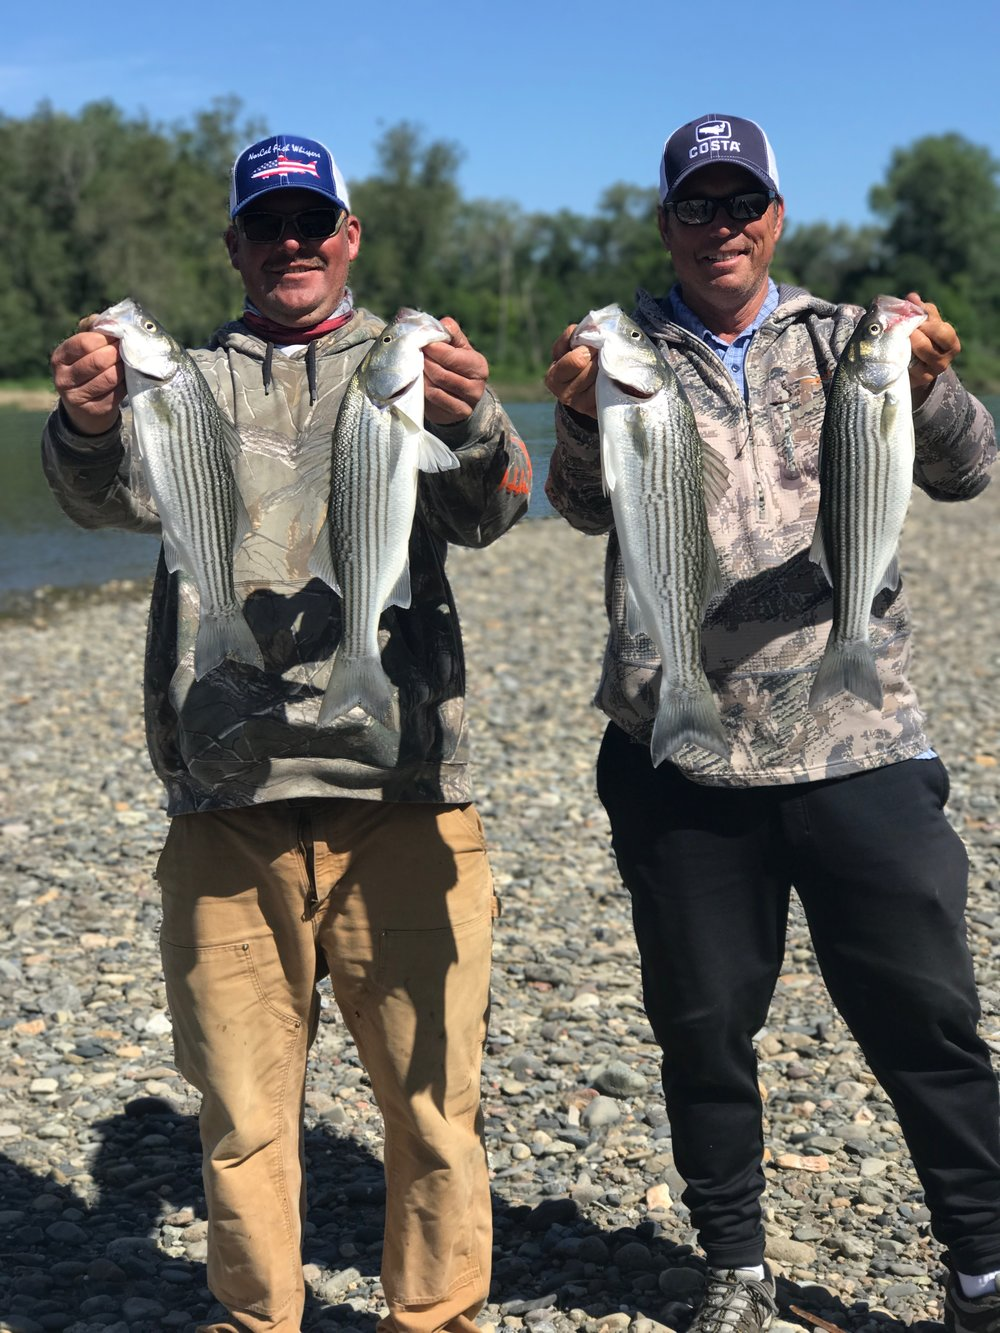 Fishing guides Mike Rasmussen with    SalmonSacRiver.com and Dave Jacobs of  sacramentofishing.com hold up their limits of keeper striped bass caught near Red Bluff, Ca on the Sacramento River here in Northern California.